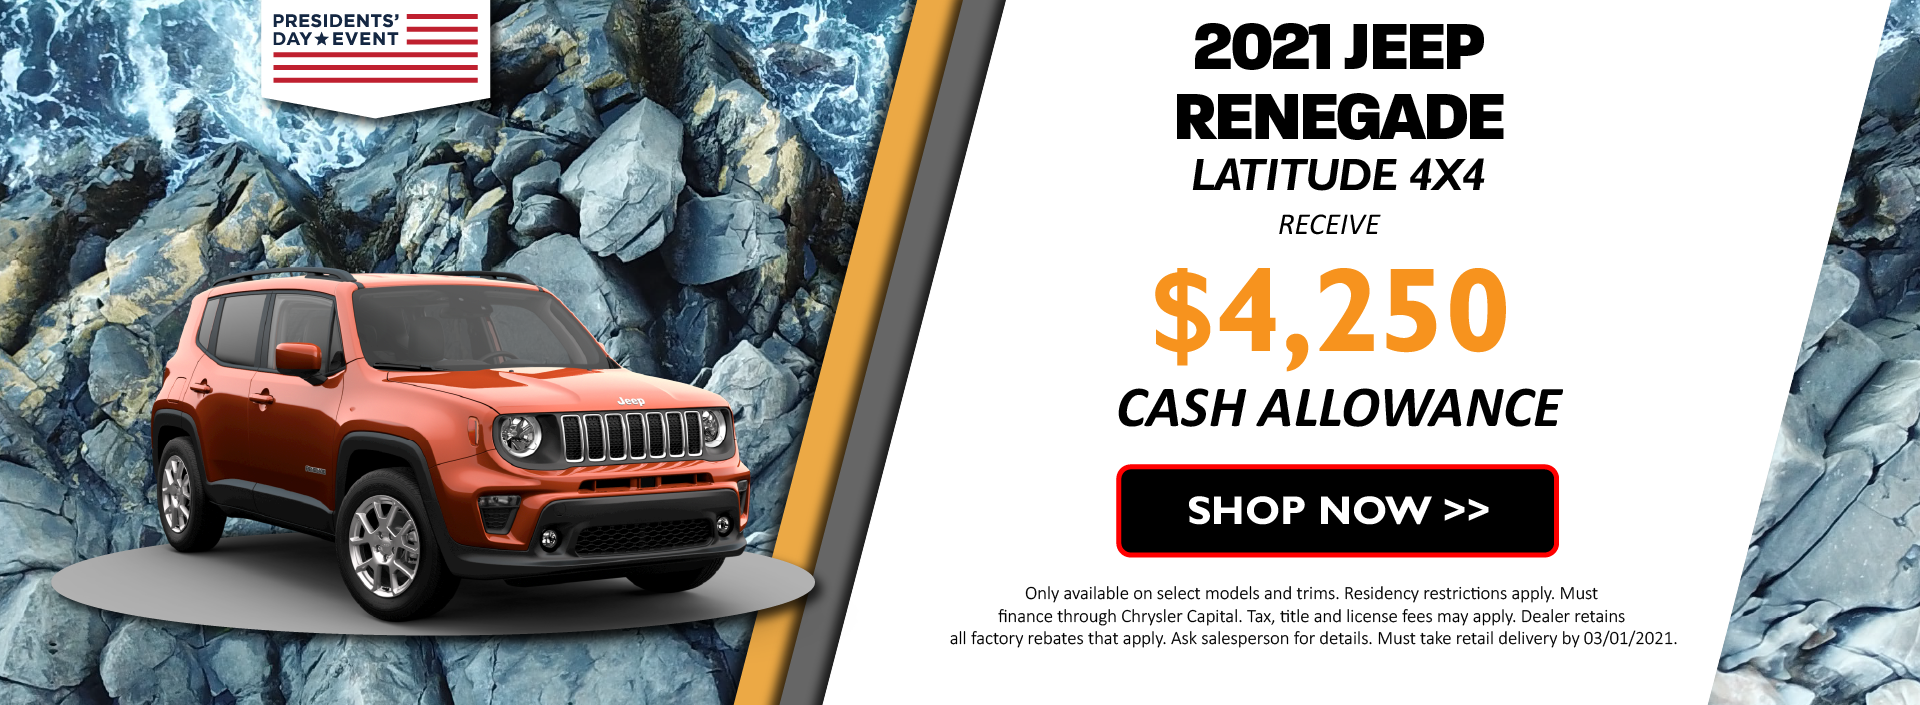 2021 Jeep Renegade February